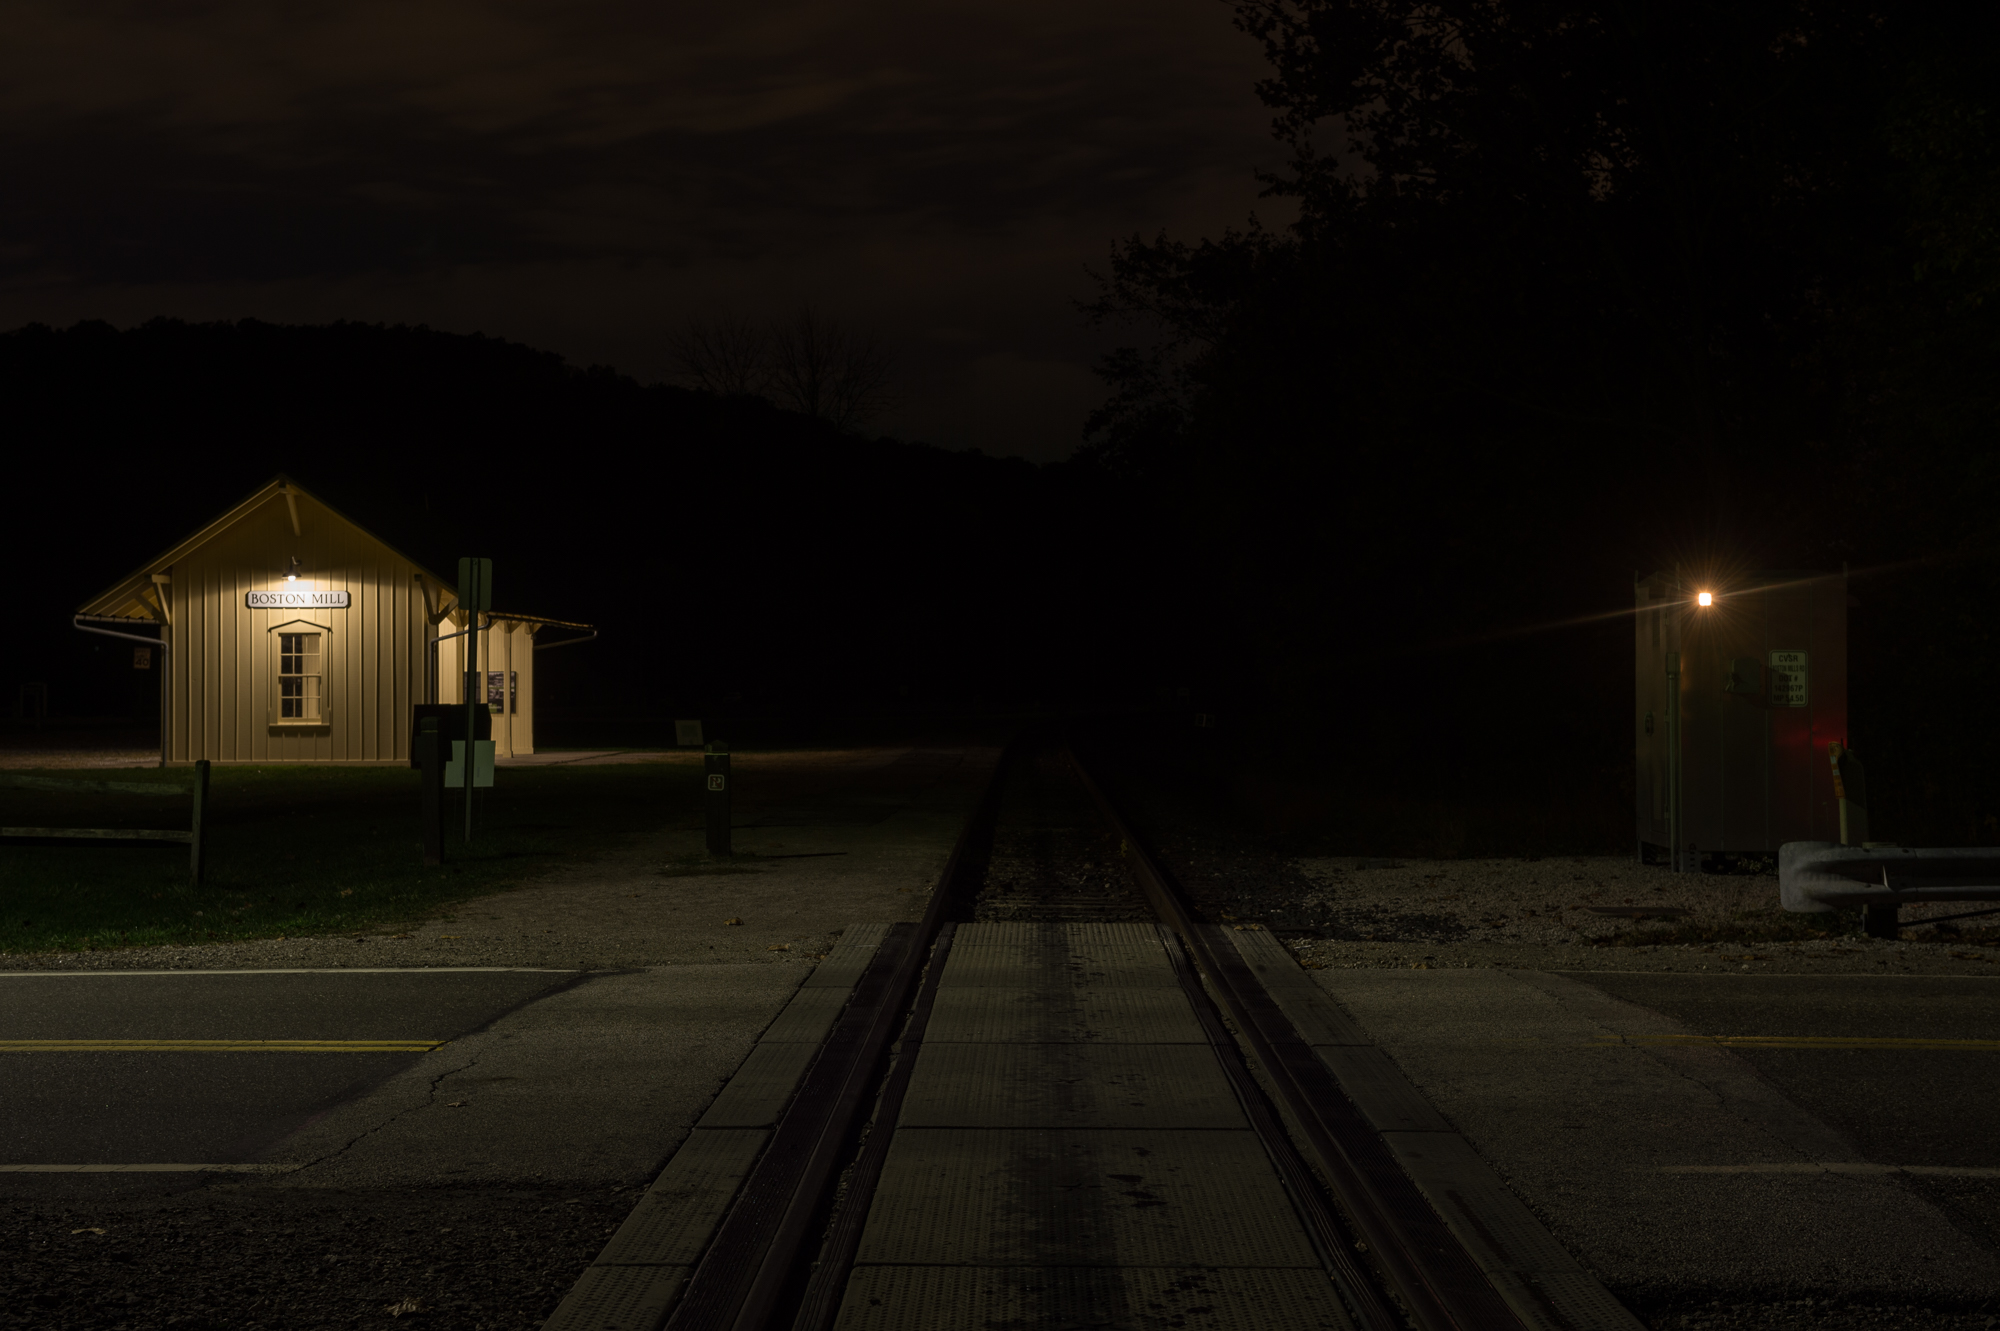 At Cuyahoga Valley, an exposure of 8 seconds, f/8 at ISO 100 recorded detail in the highlights.